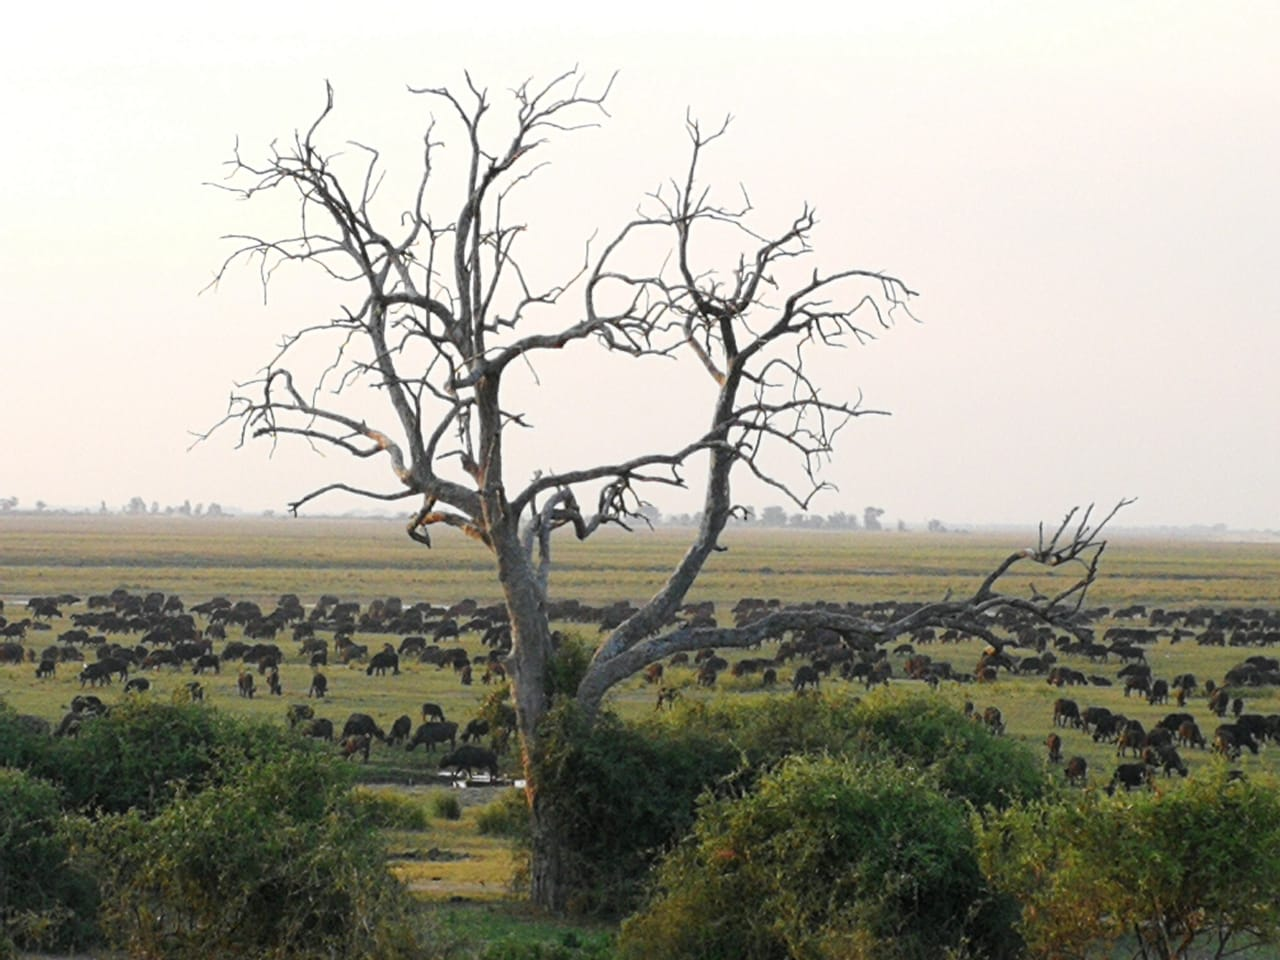 Zimbabwe buffalo herd at Chobe NP David Havemann